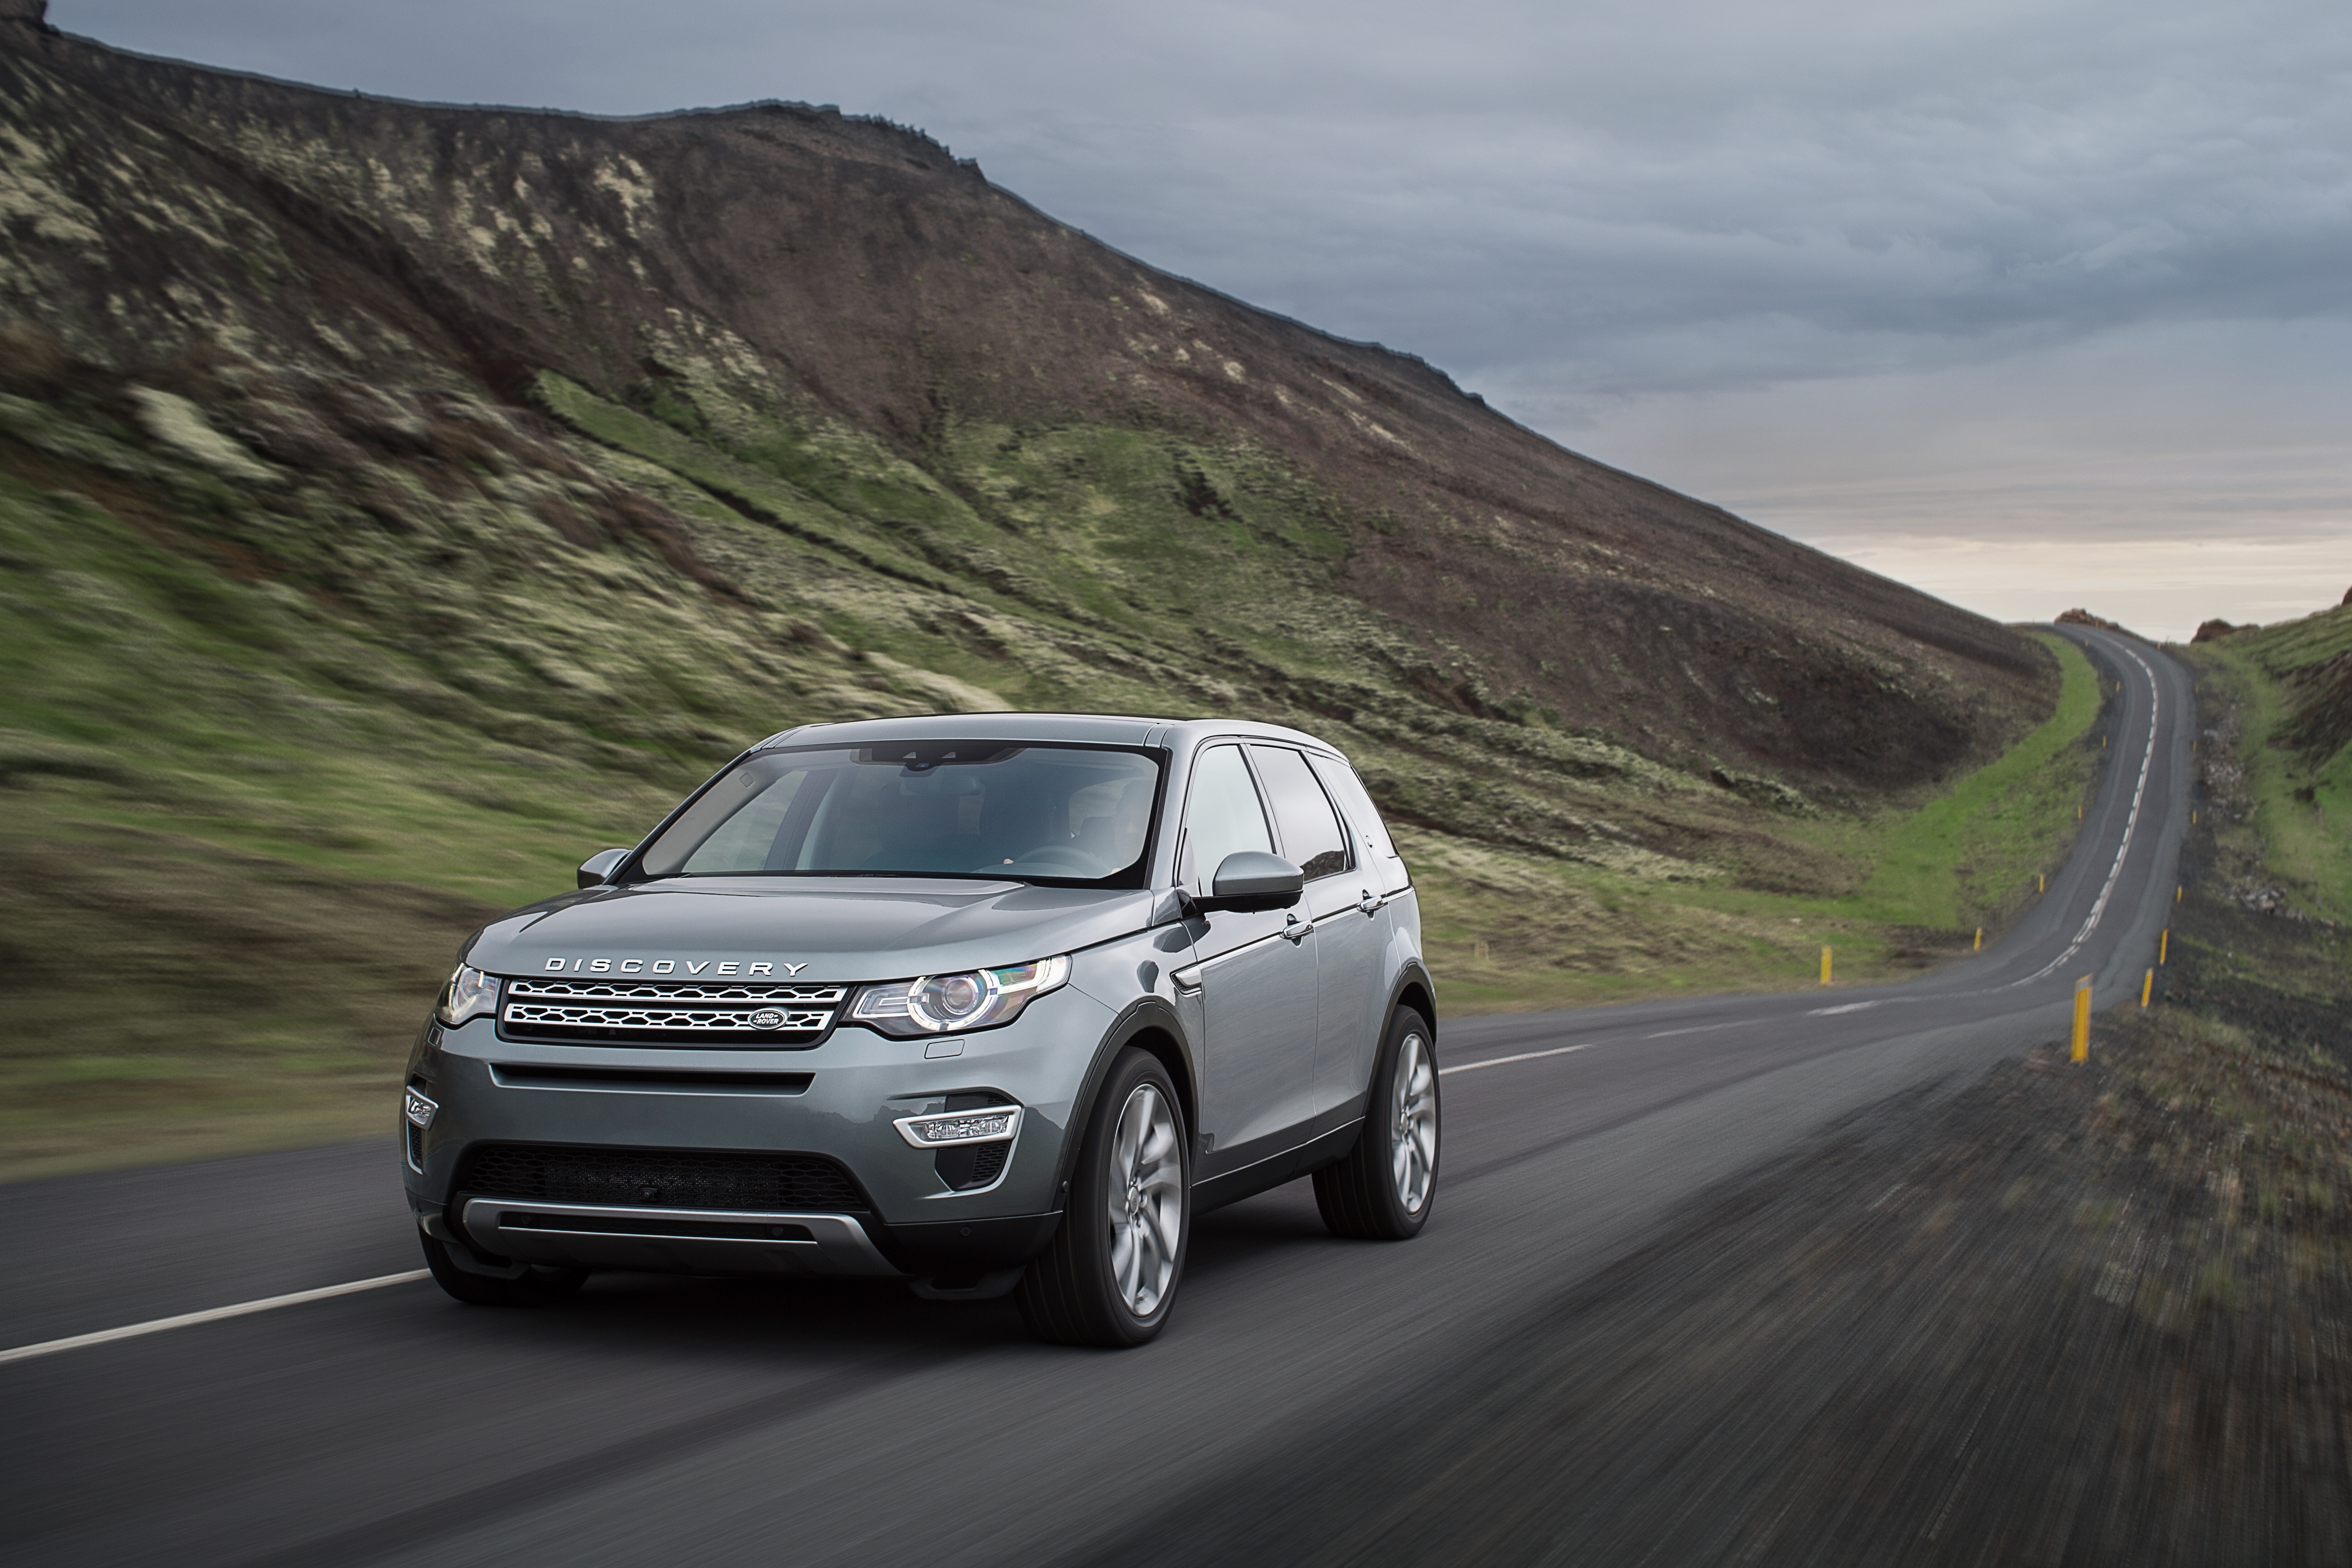 video thumbnail landrover brussels stock sale land car the suv videoblocks discovery on for at european show sport crossover footage motor rover display